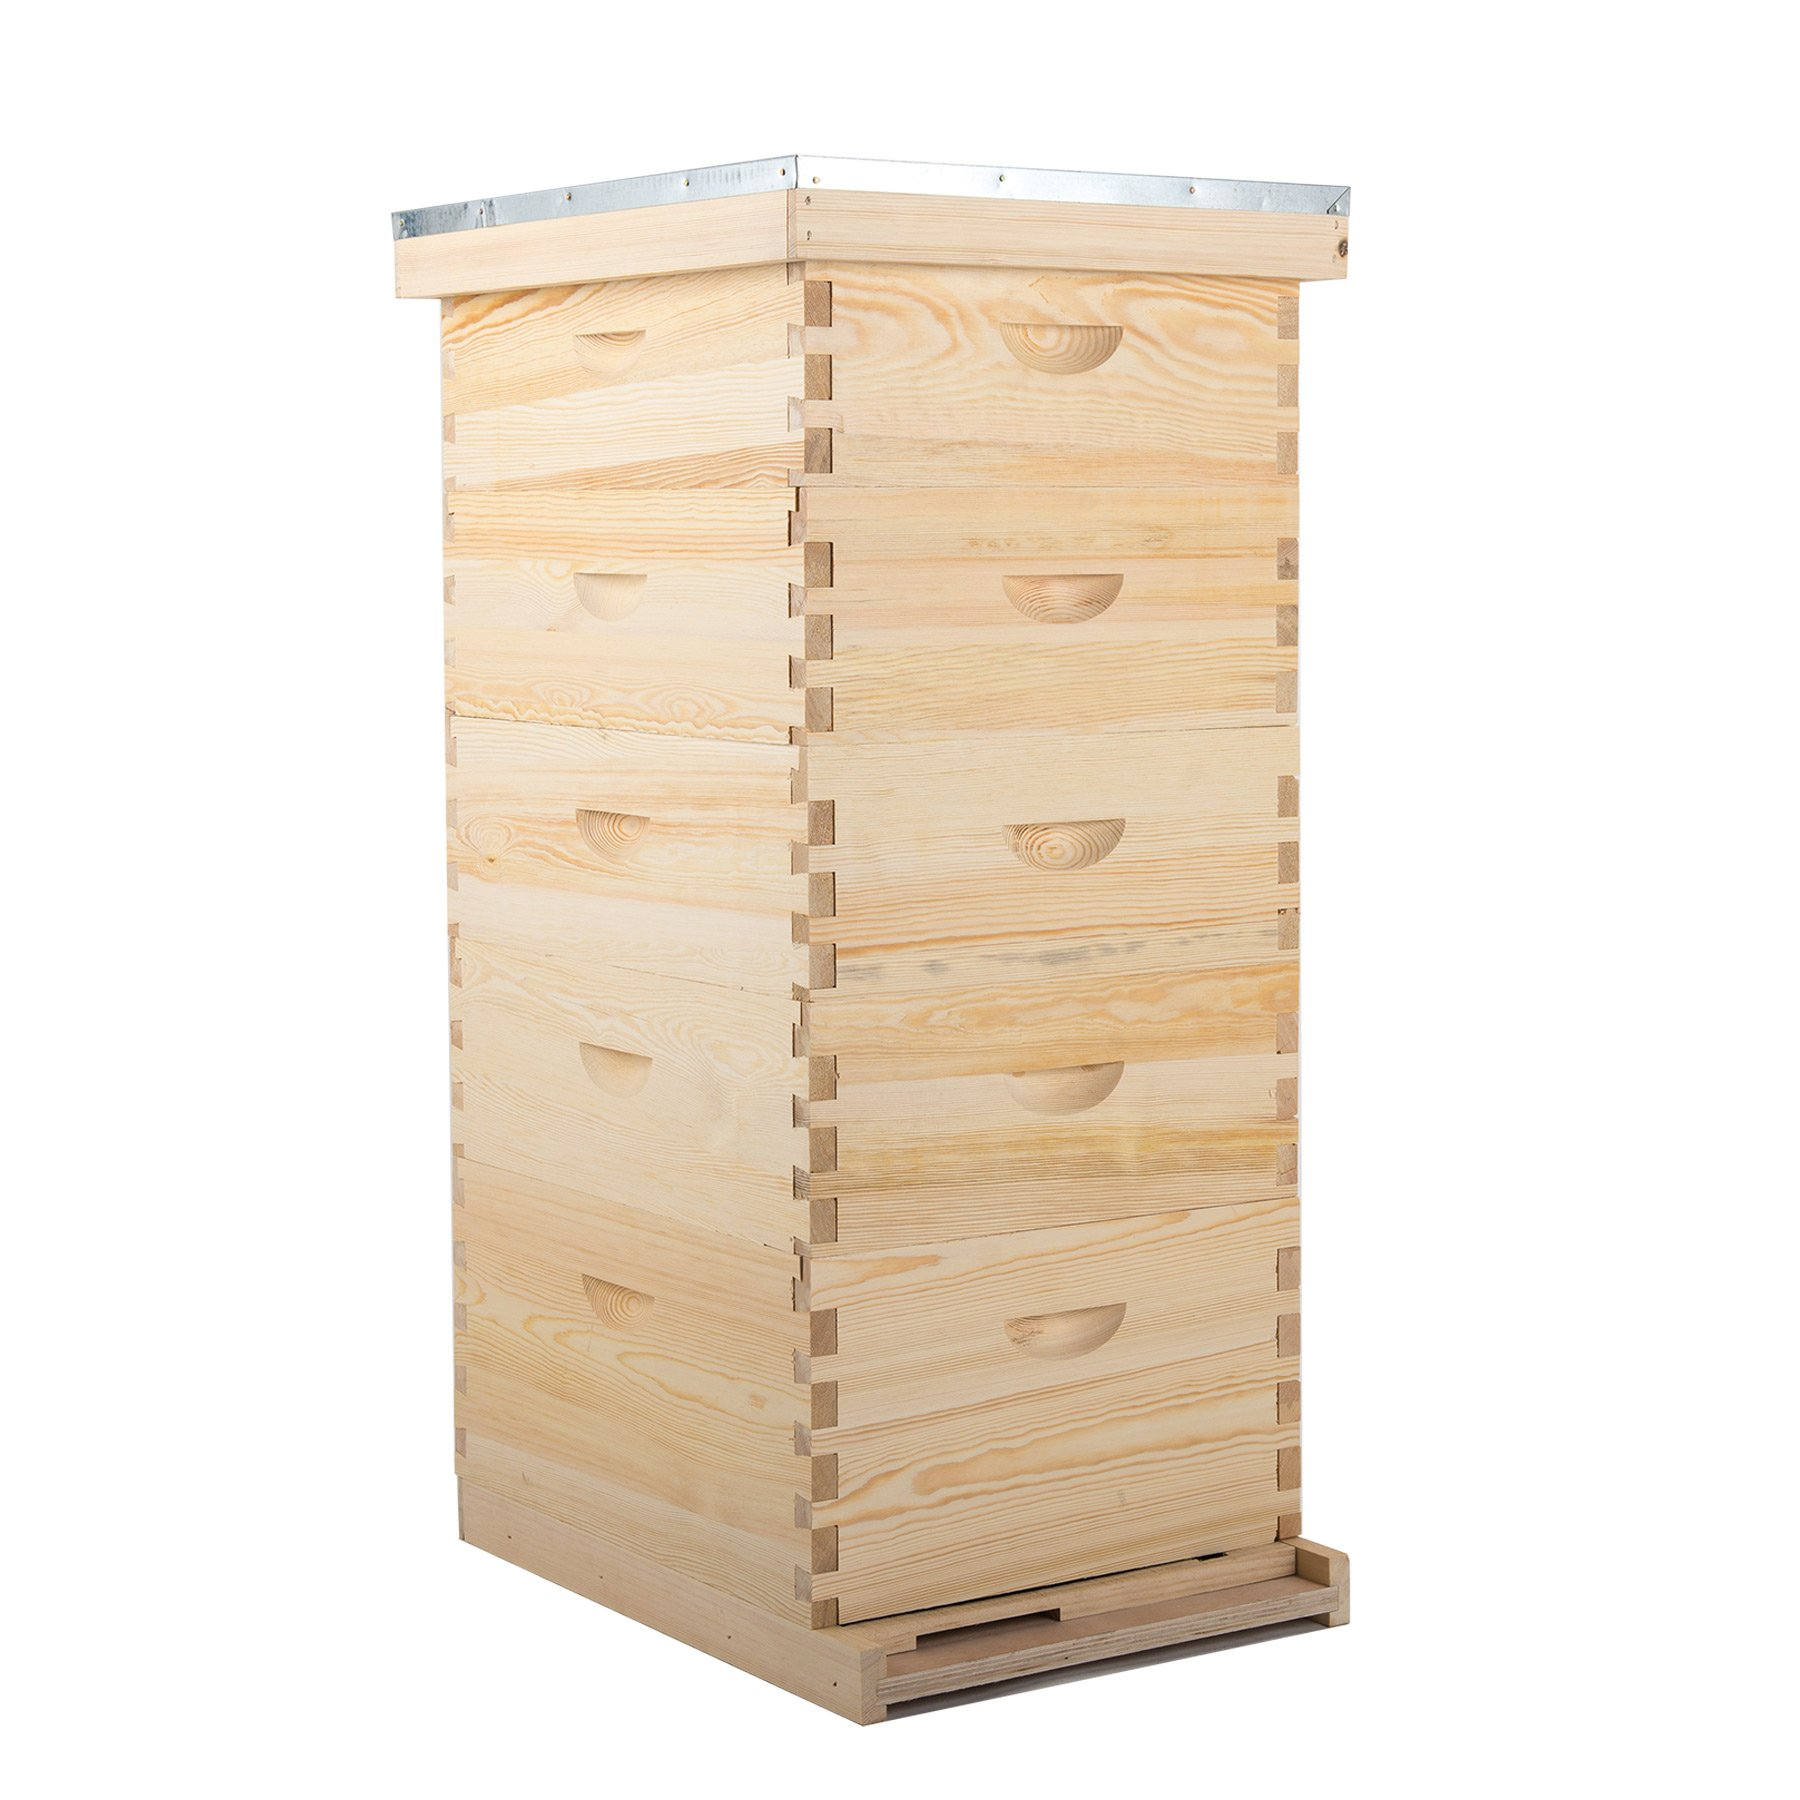 CO-Z 5-layer Bee Hive Boxes, Beehive Kits for for Beekeepers, Bee Keeping Tool Box, Deep Honey Bee Box